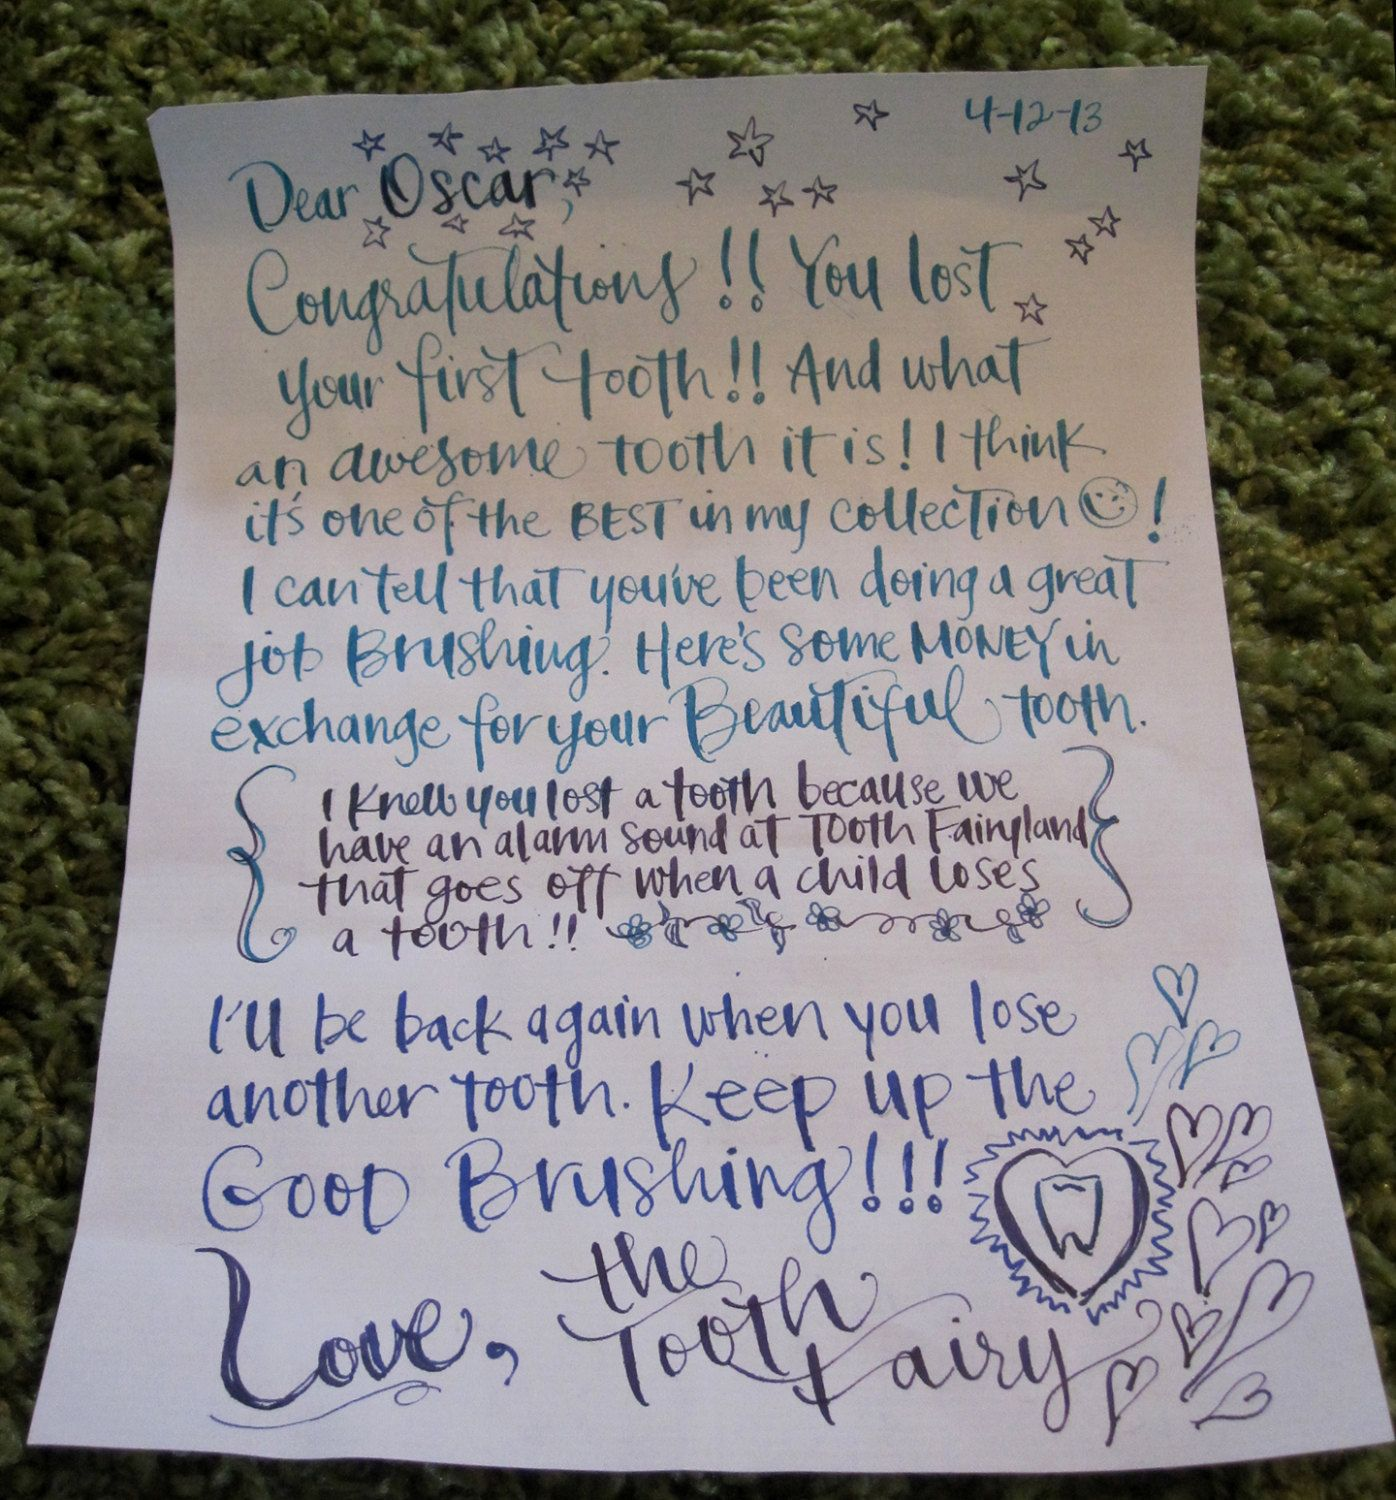 Personalized Tooth Fairy Letter In Calligraphy For Childs First